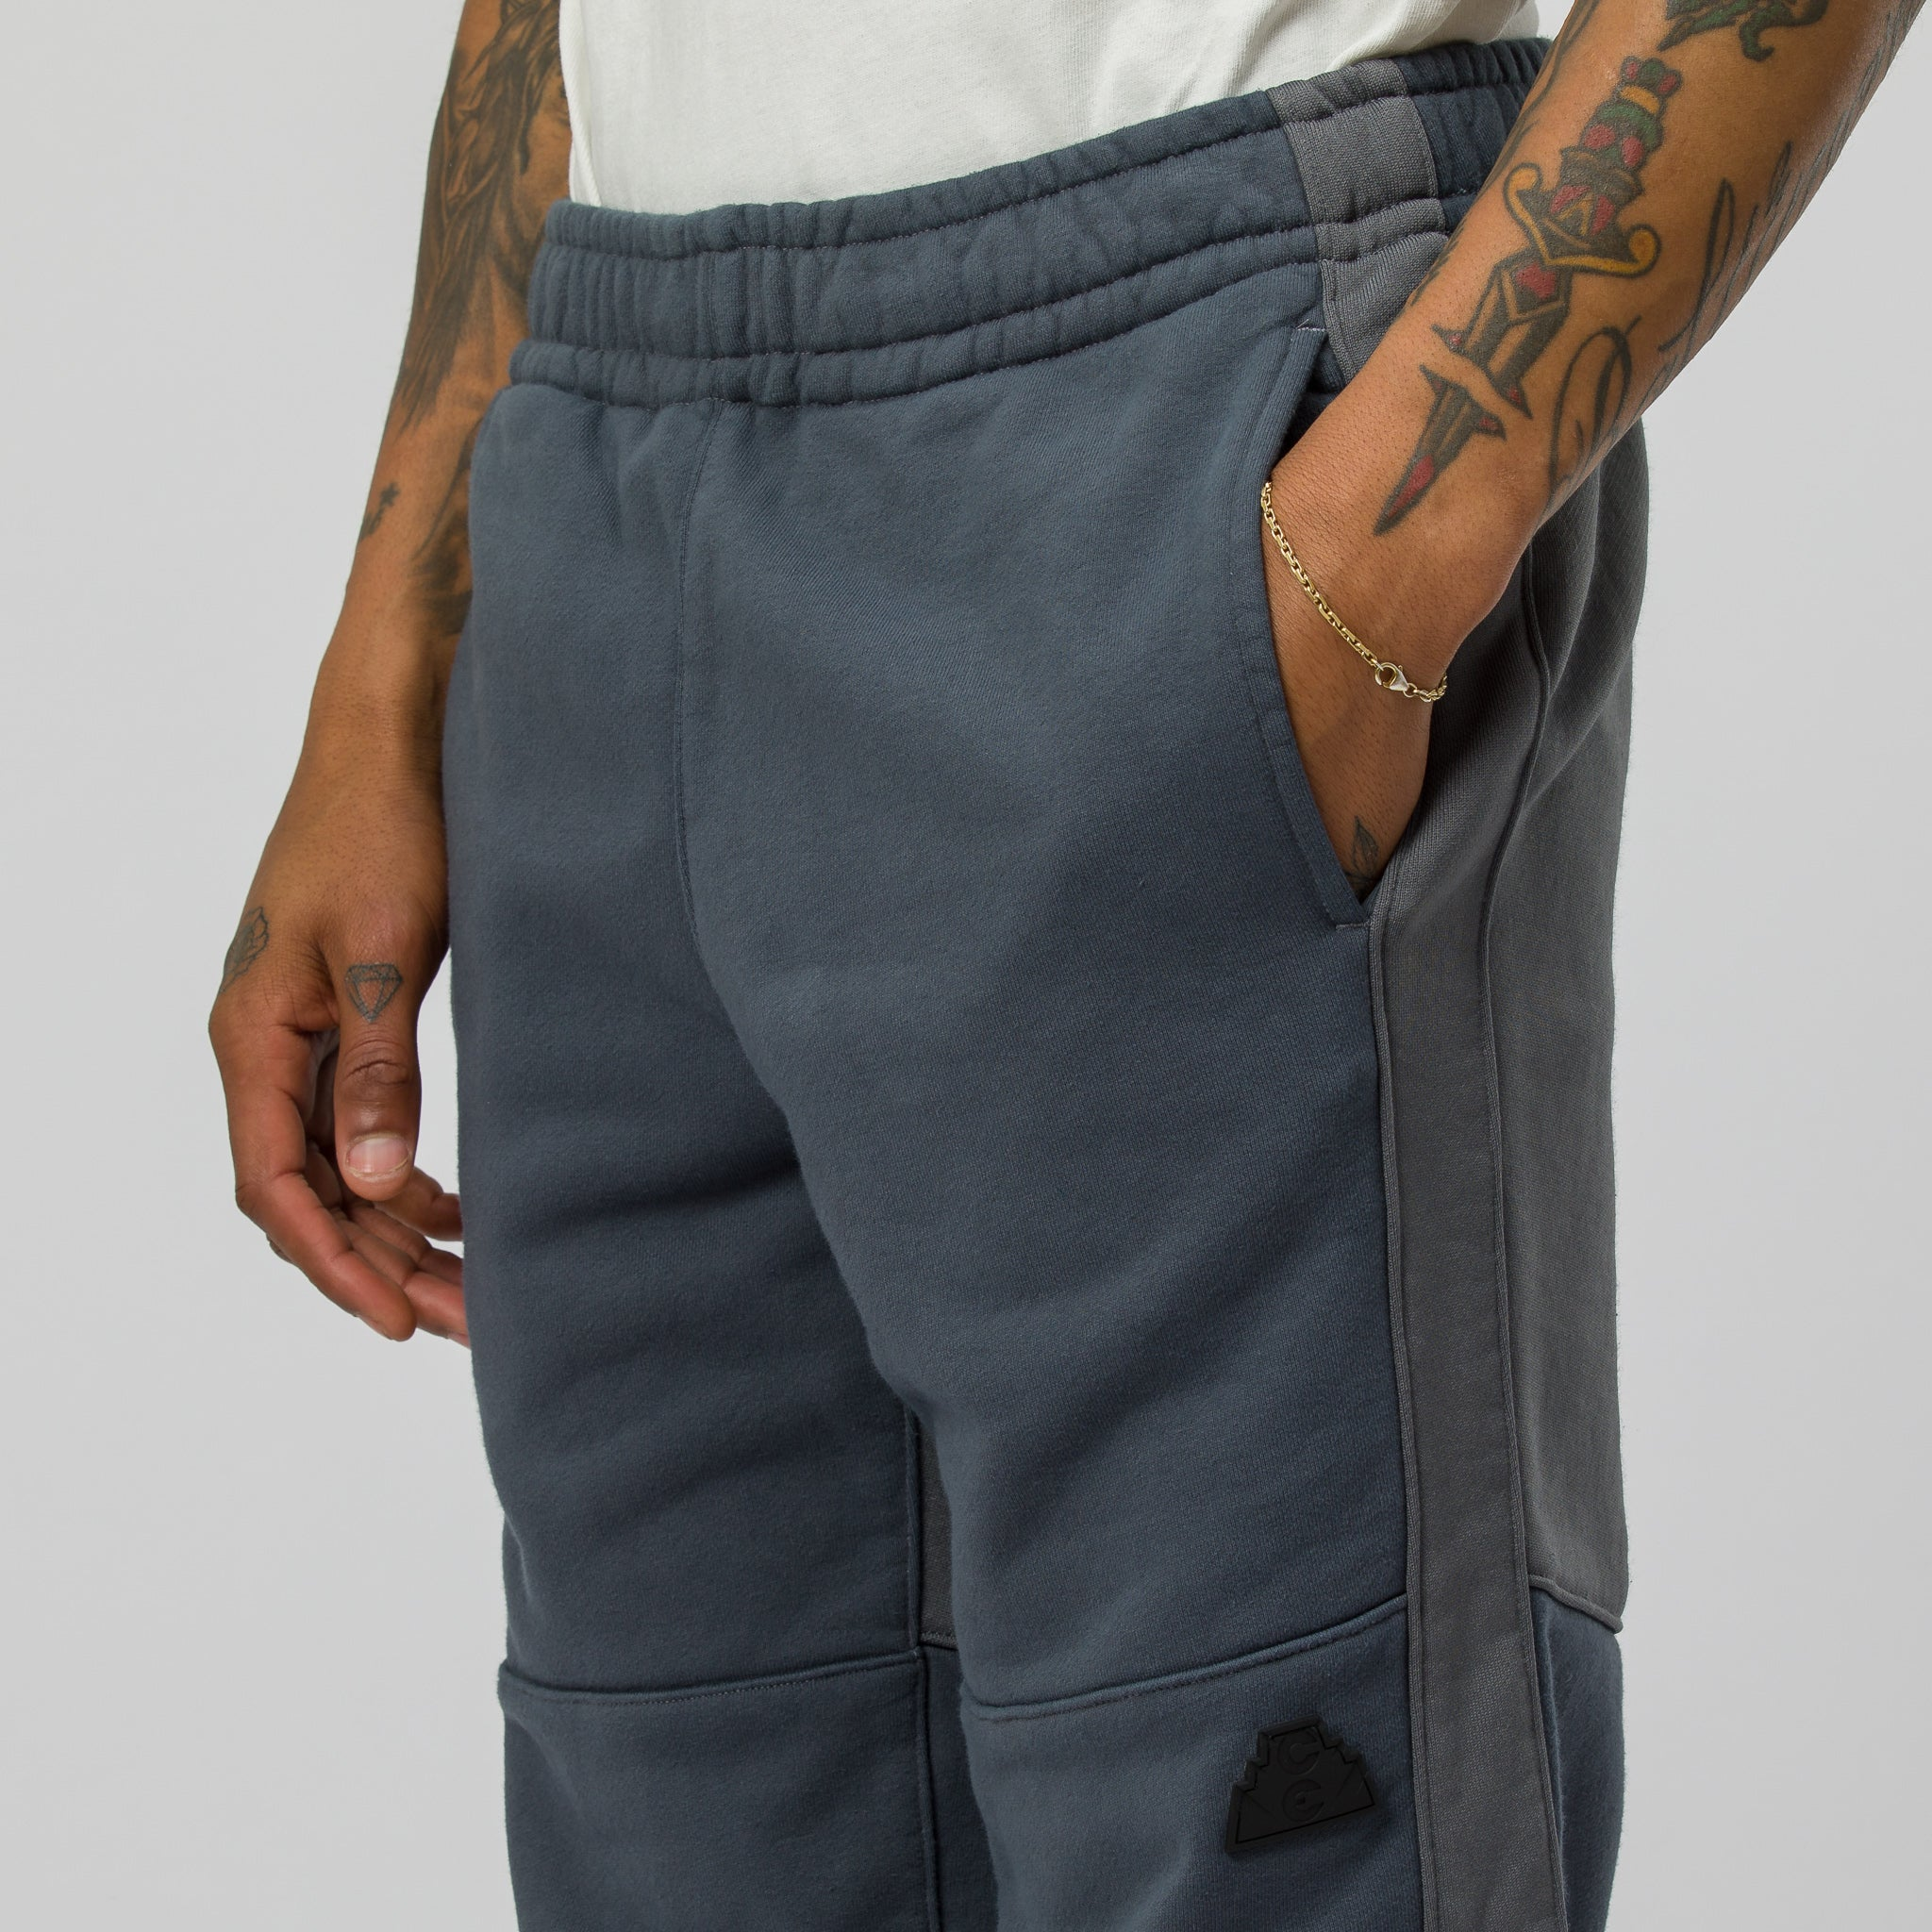 53d03b35f2 Cav Empt P/C Sweat Jog Pants in Grey | Notre